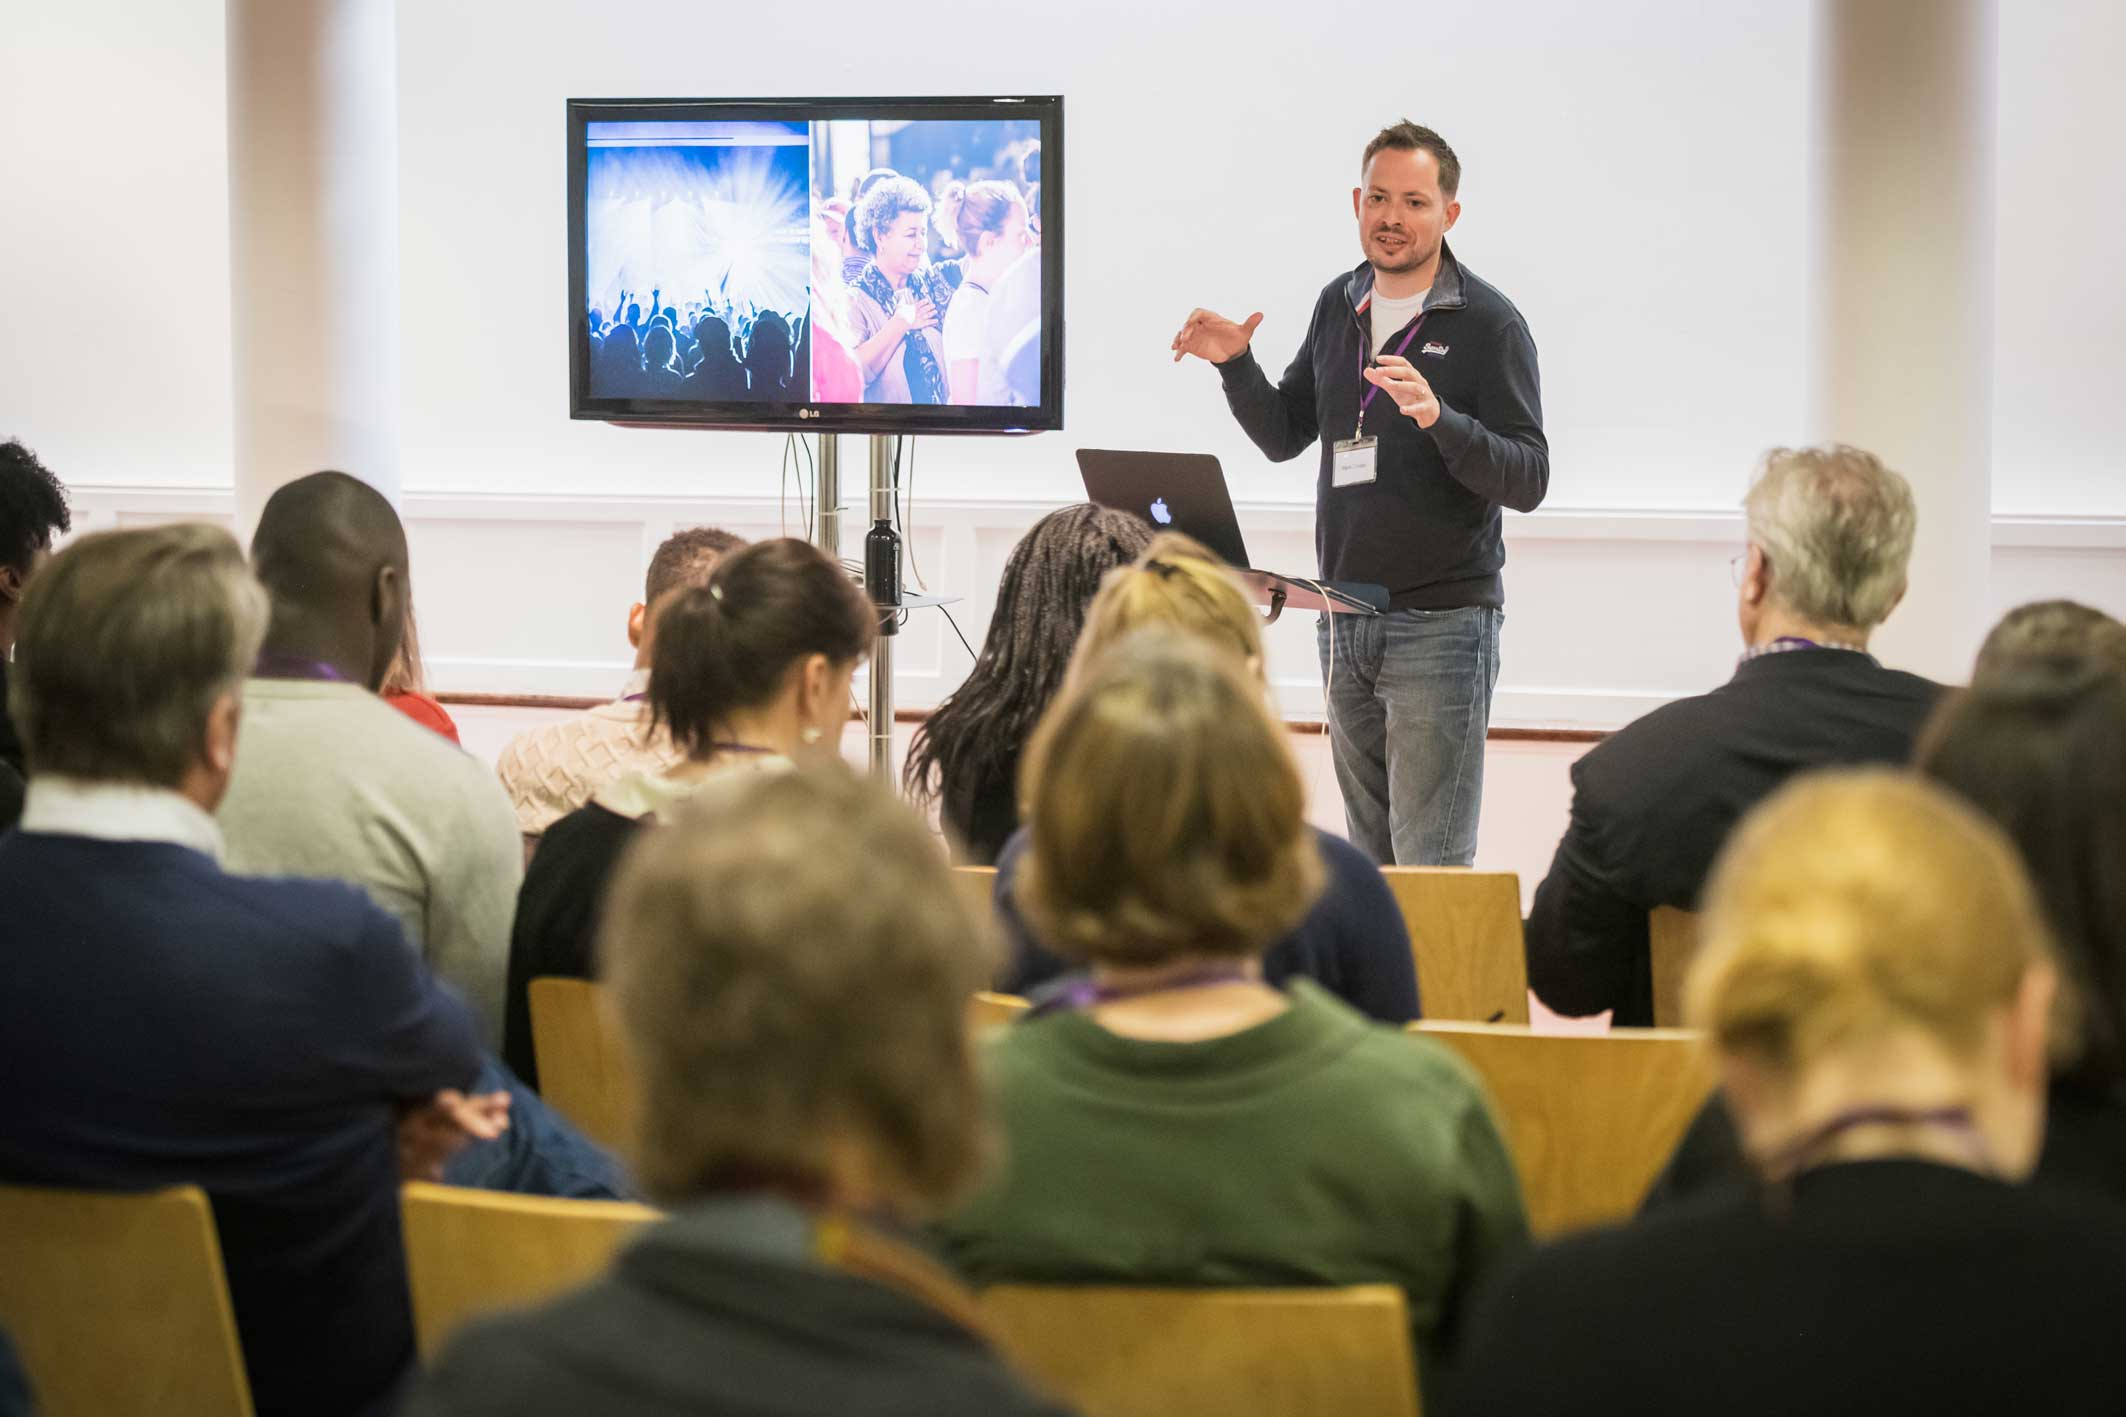 presenter gives talk with tv screen to delegates at conference at Conference with screens and sofa style seating at St Mary's Venue Hire, London